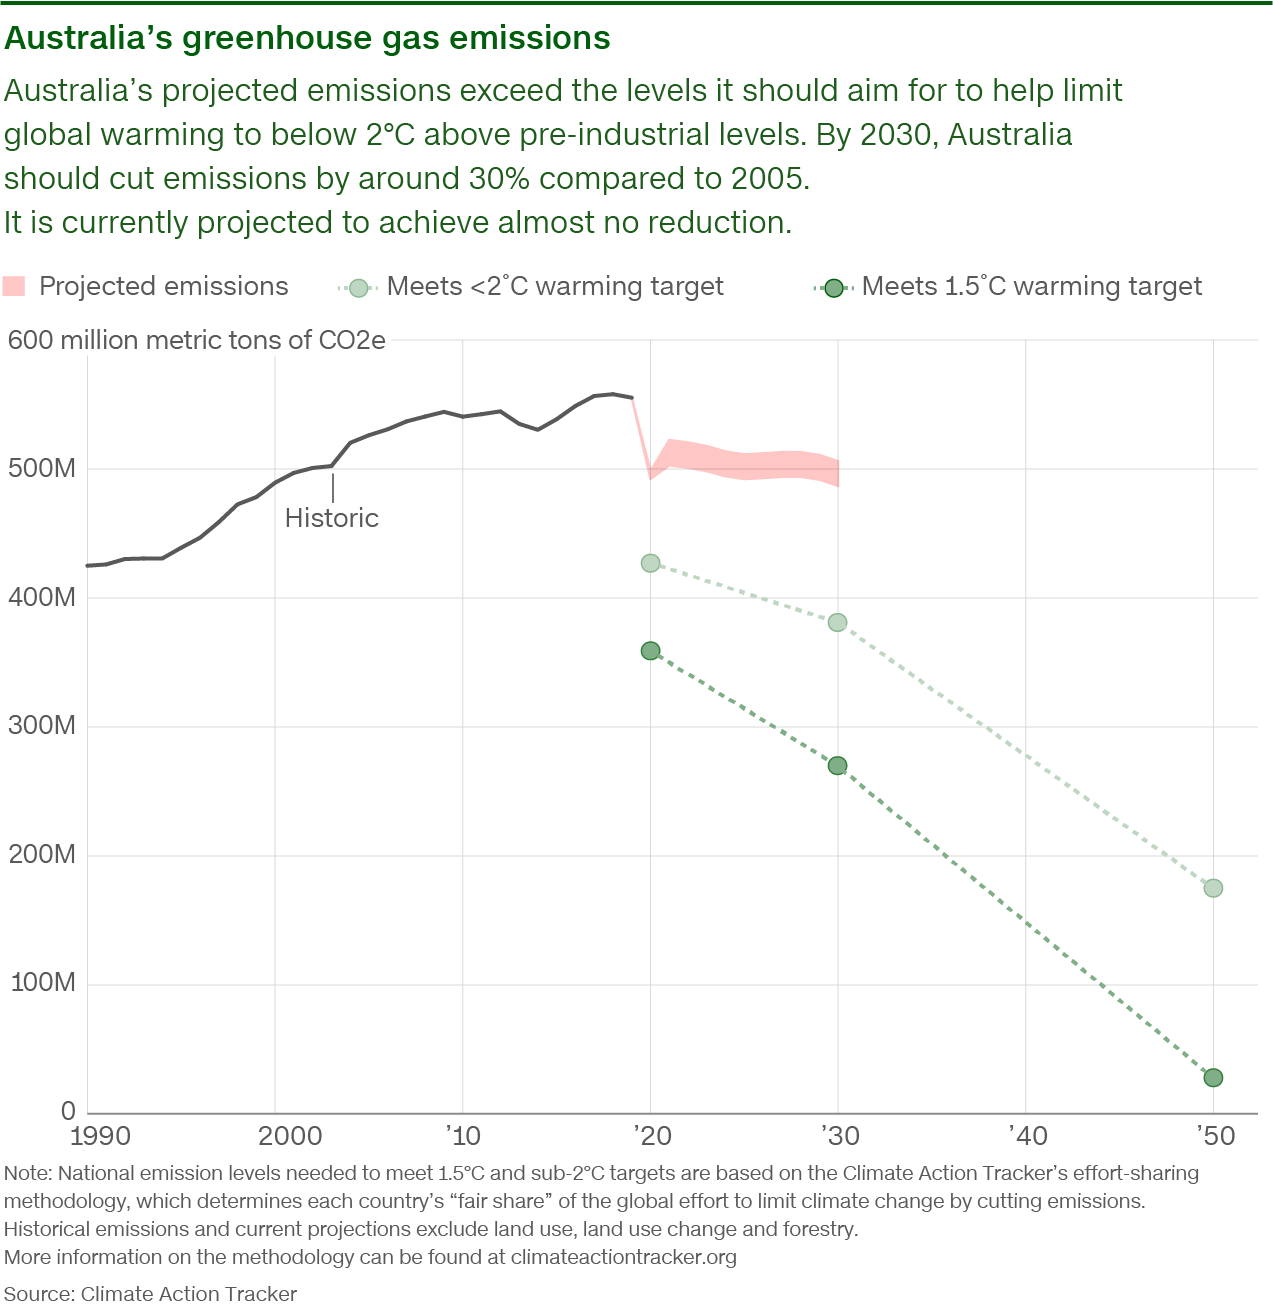 emissions aus lg - Covid-19 gave the world a chance to fix the climate crisis. We're about to waste it. -